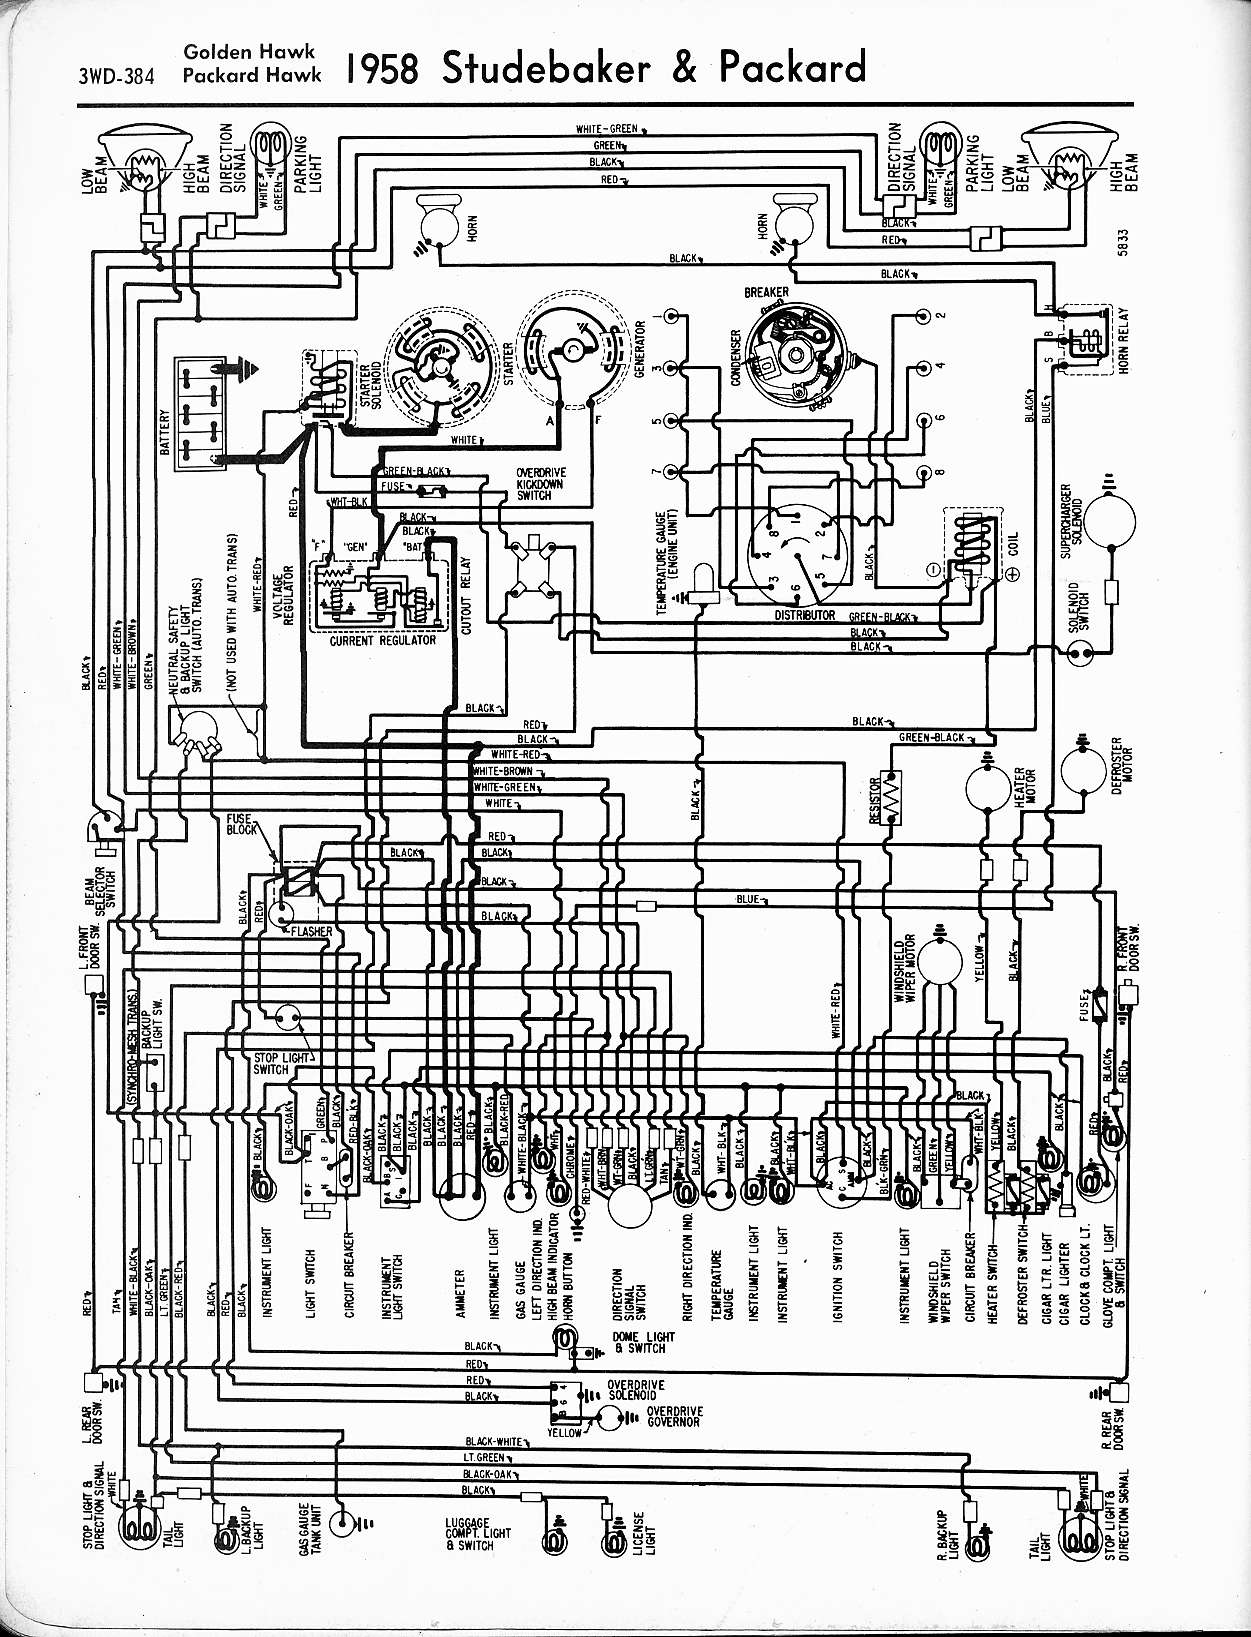 Ingersoll Rand Sd100d Wiring Diagram Library 110 Switch Studebaker Diagrams The Old Car Manual Project Rh Oldcarmanualproject Com